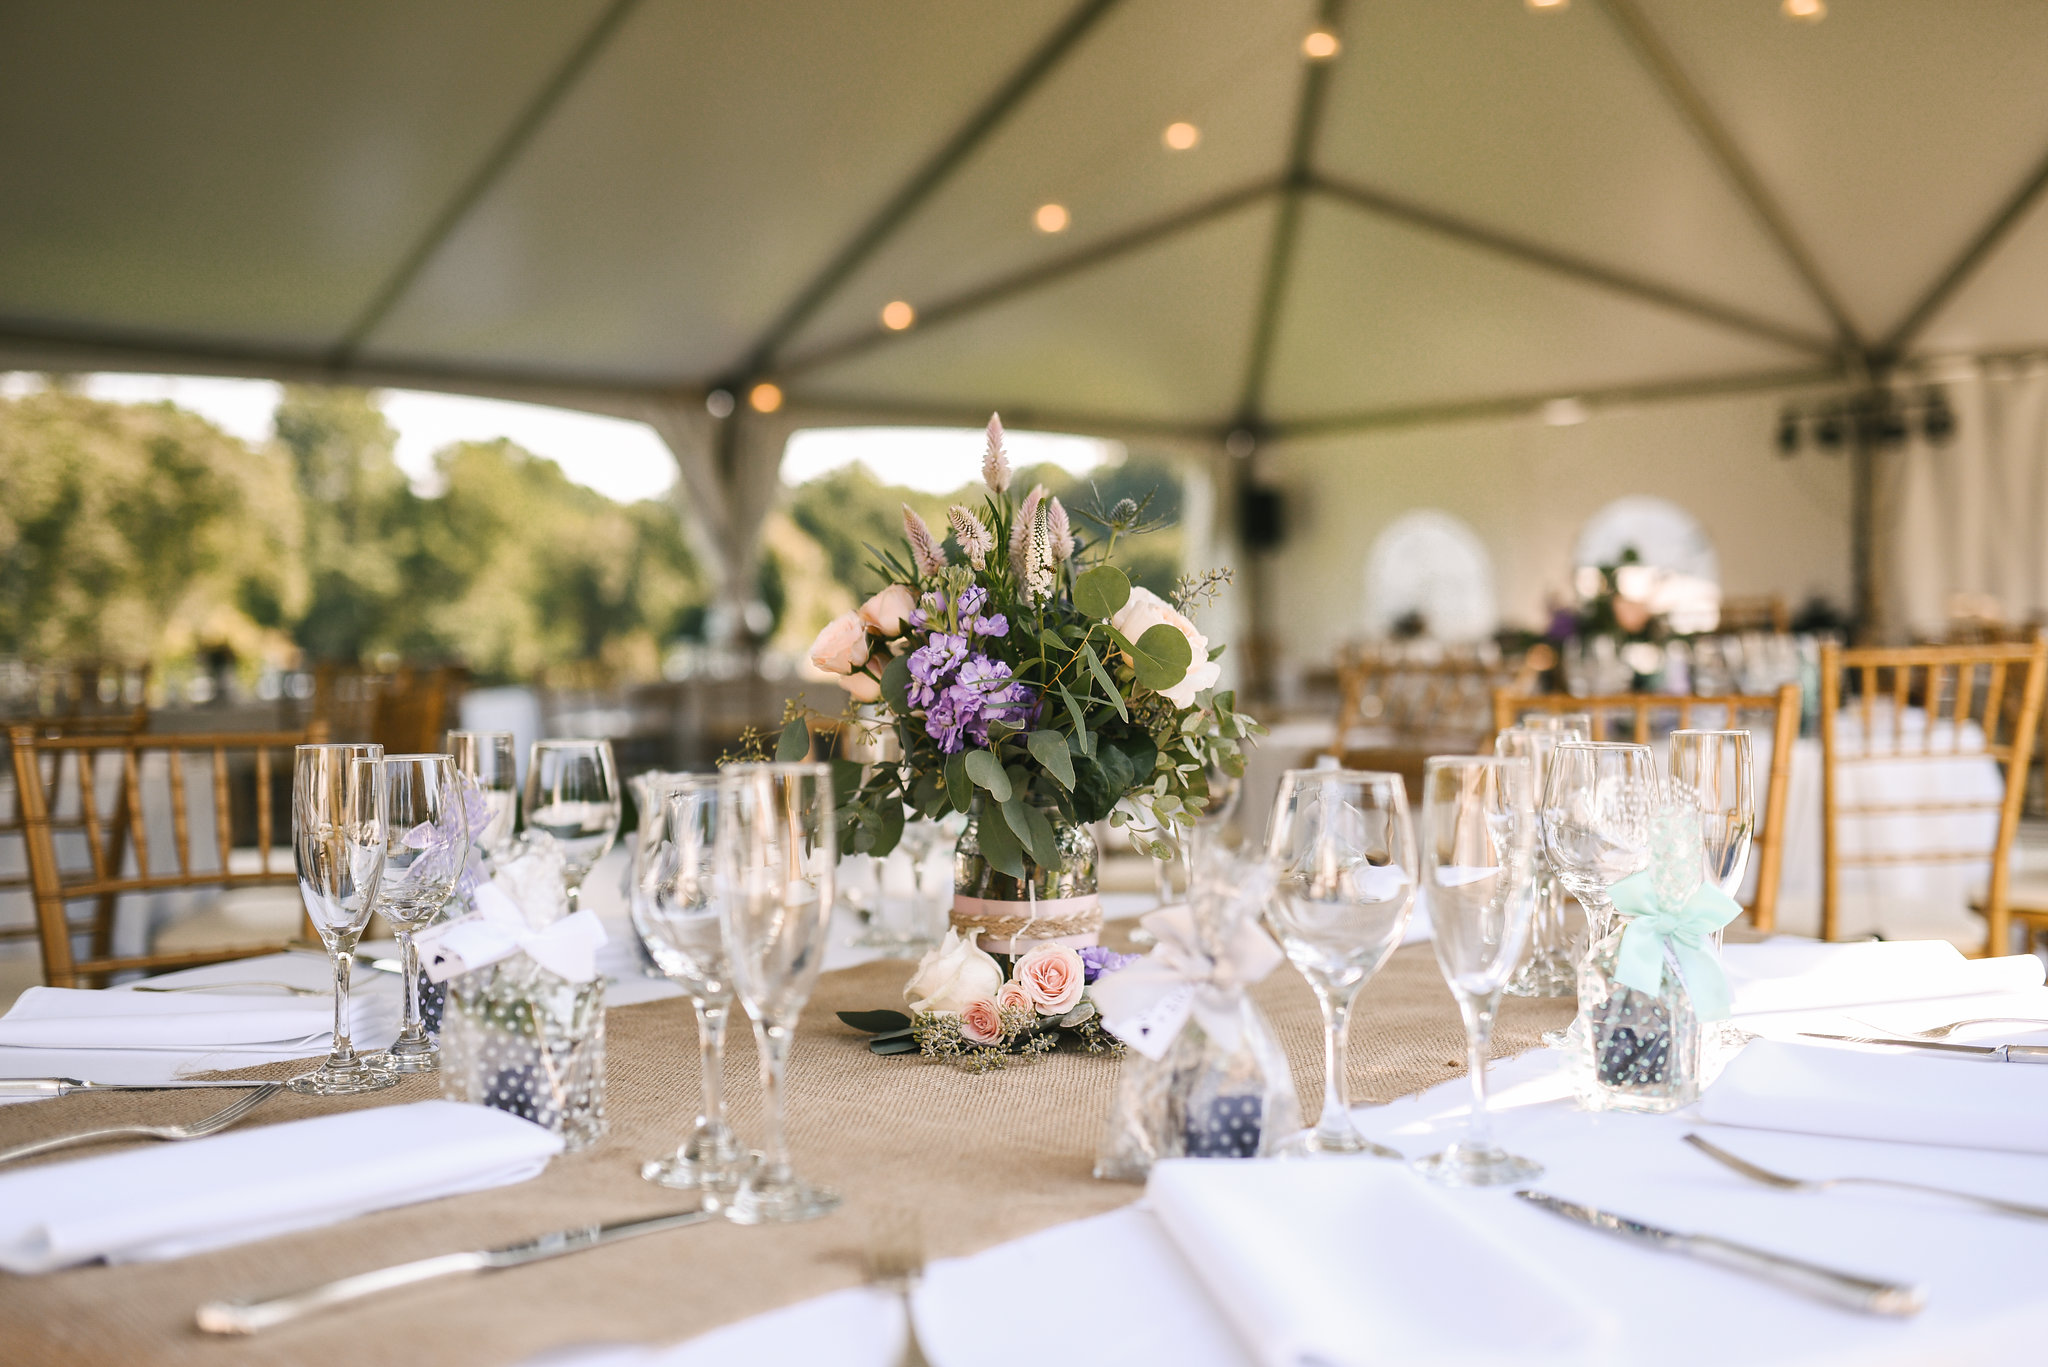 Maryland, Eastern Shore, Baltimore Wedding Photographer, Romantic, Boho, Backyard Wedding, Nature, White and Purple Flowers with Succulents, Michael Designs Florist, Table Settings at Reception